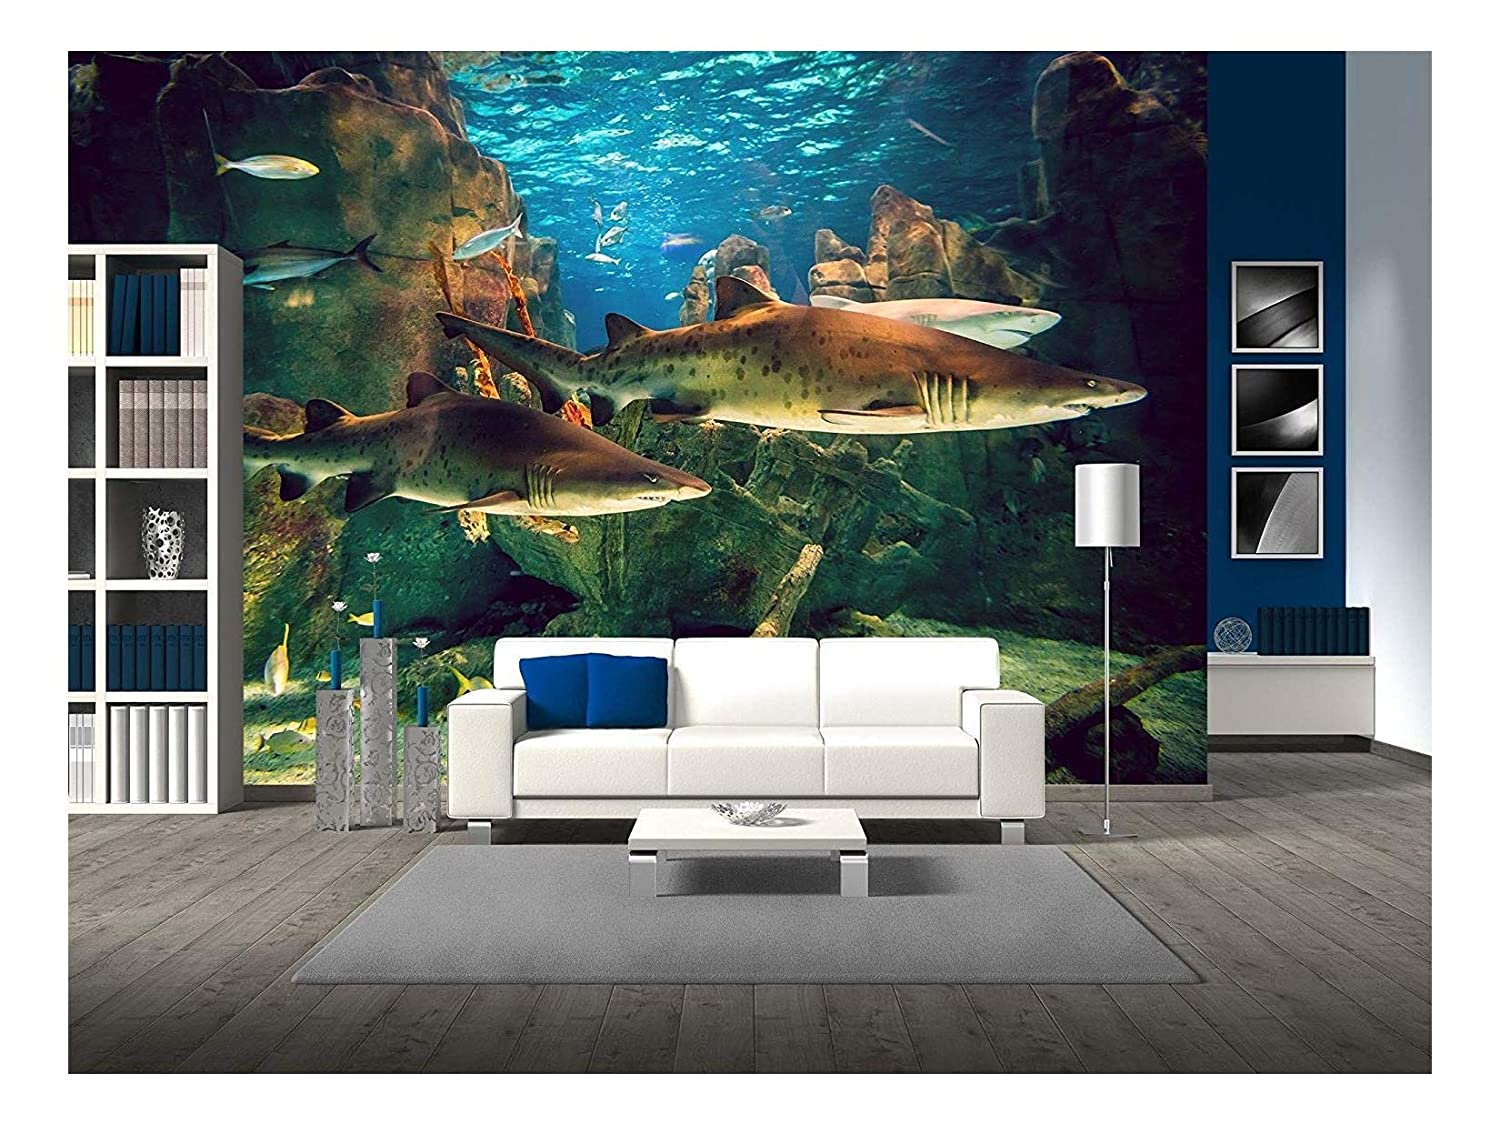 wall26 - Two White Sharks in Istanbul Aquarium. - Removable Wall Mural | Self-Adhesive Large Wallpaper - 66x96 inches